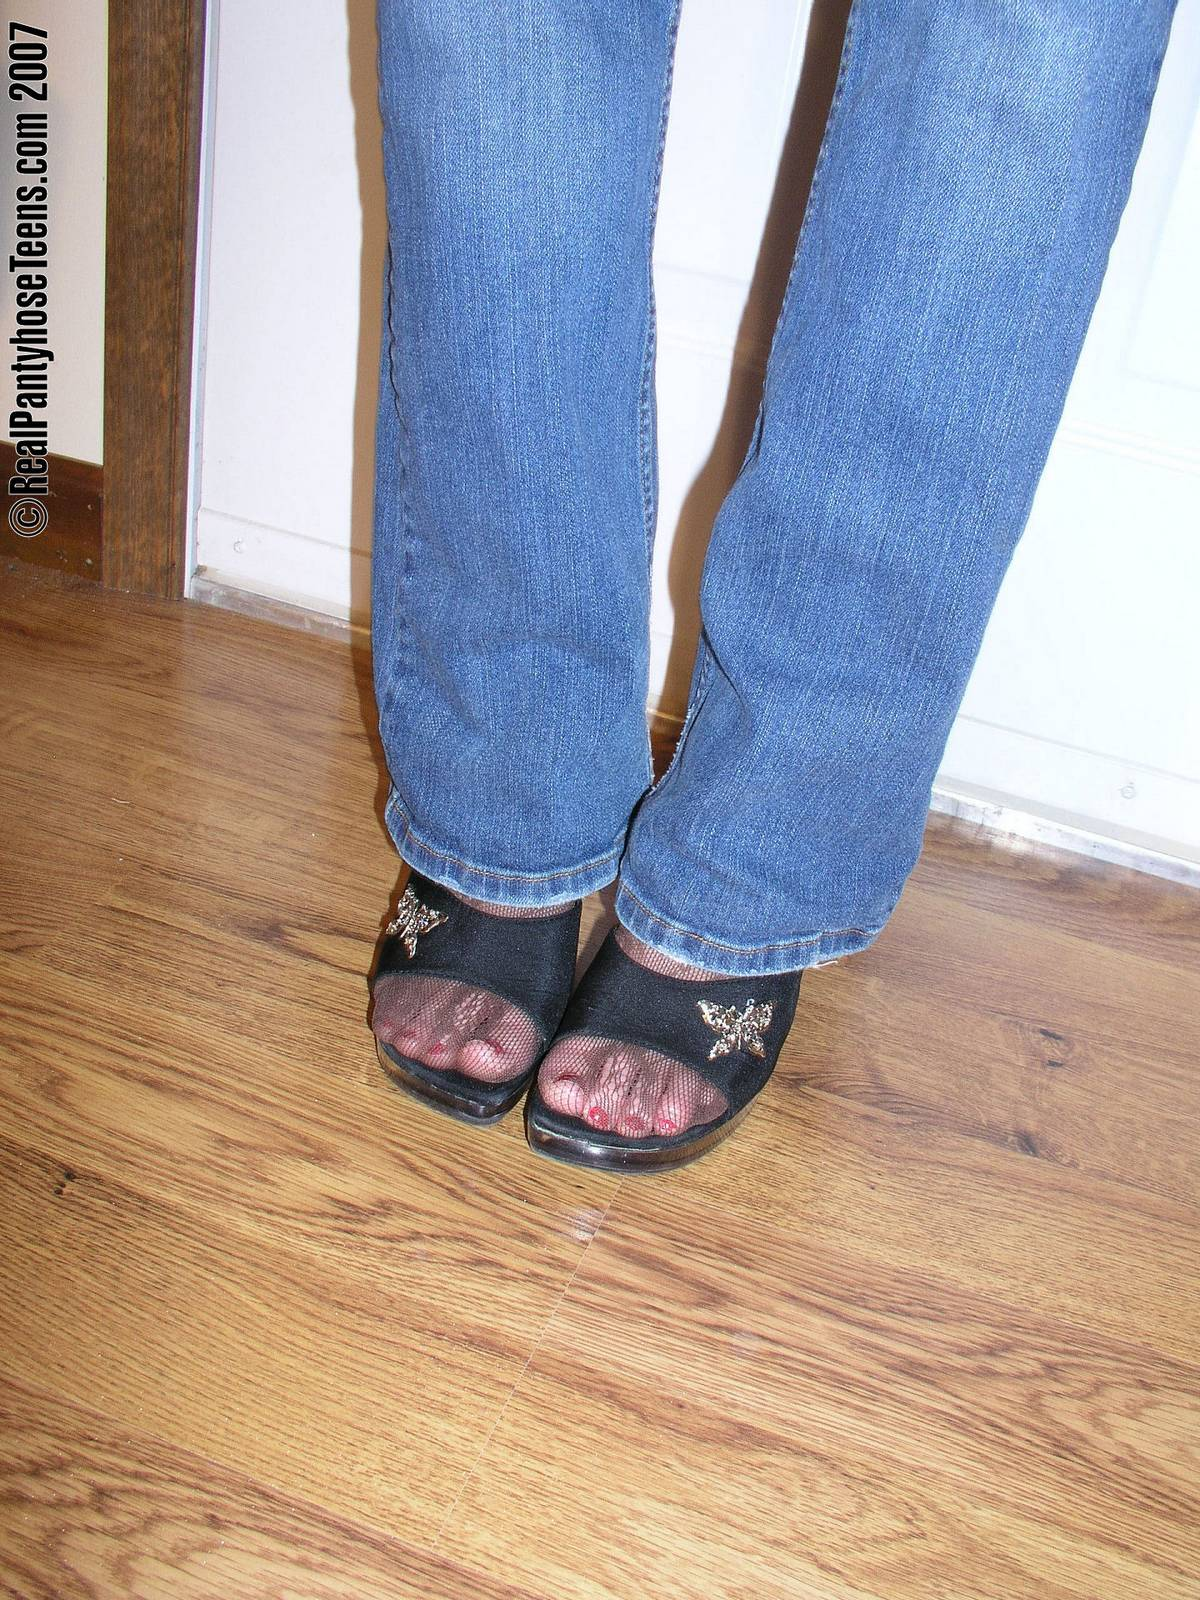 Jeans and pantyhose pics